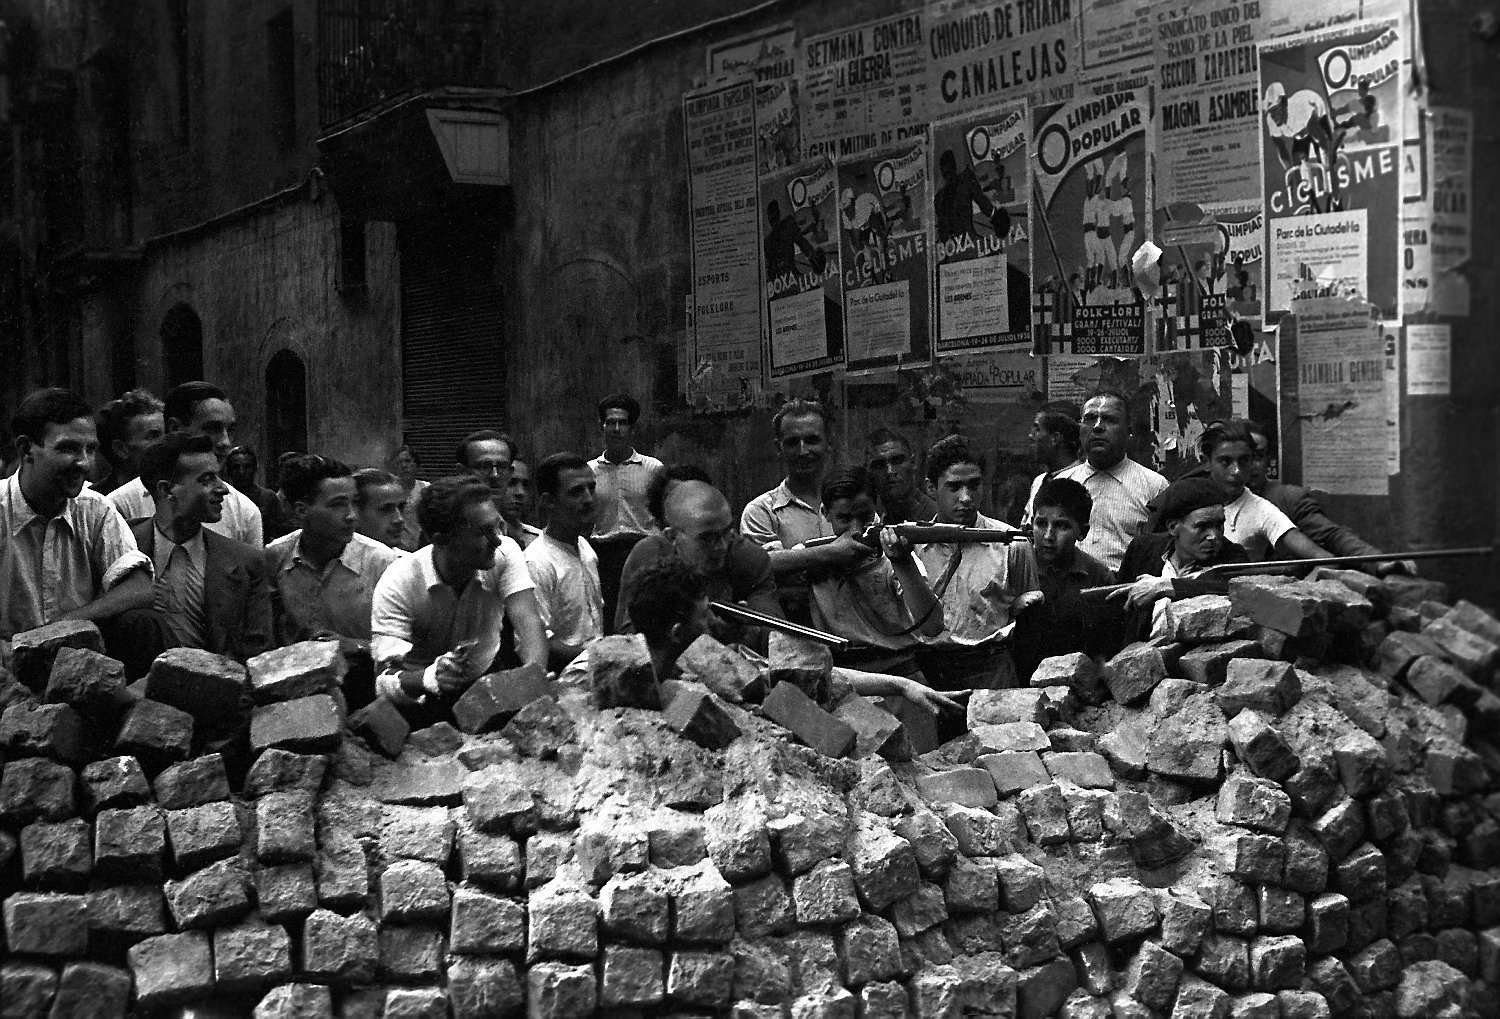 Barcelona July 19, 1936. Barricade after the nationalist uprising in Spain. Photo: Unknown. Public Domain.